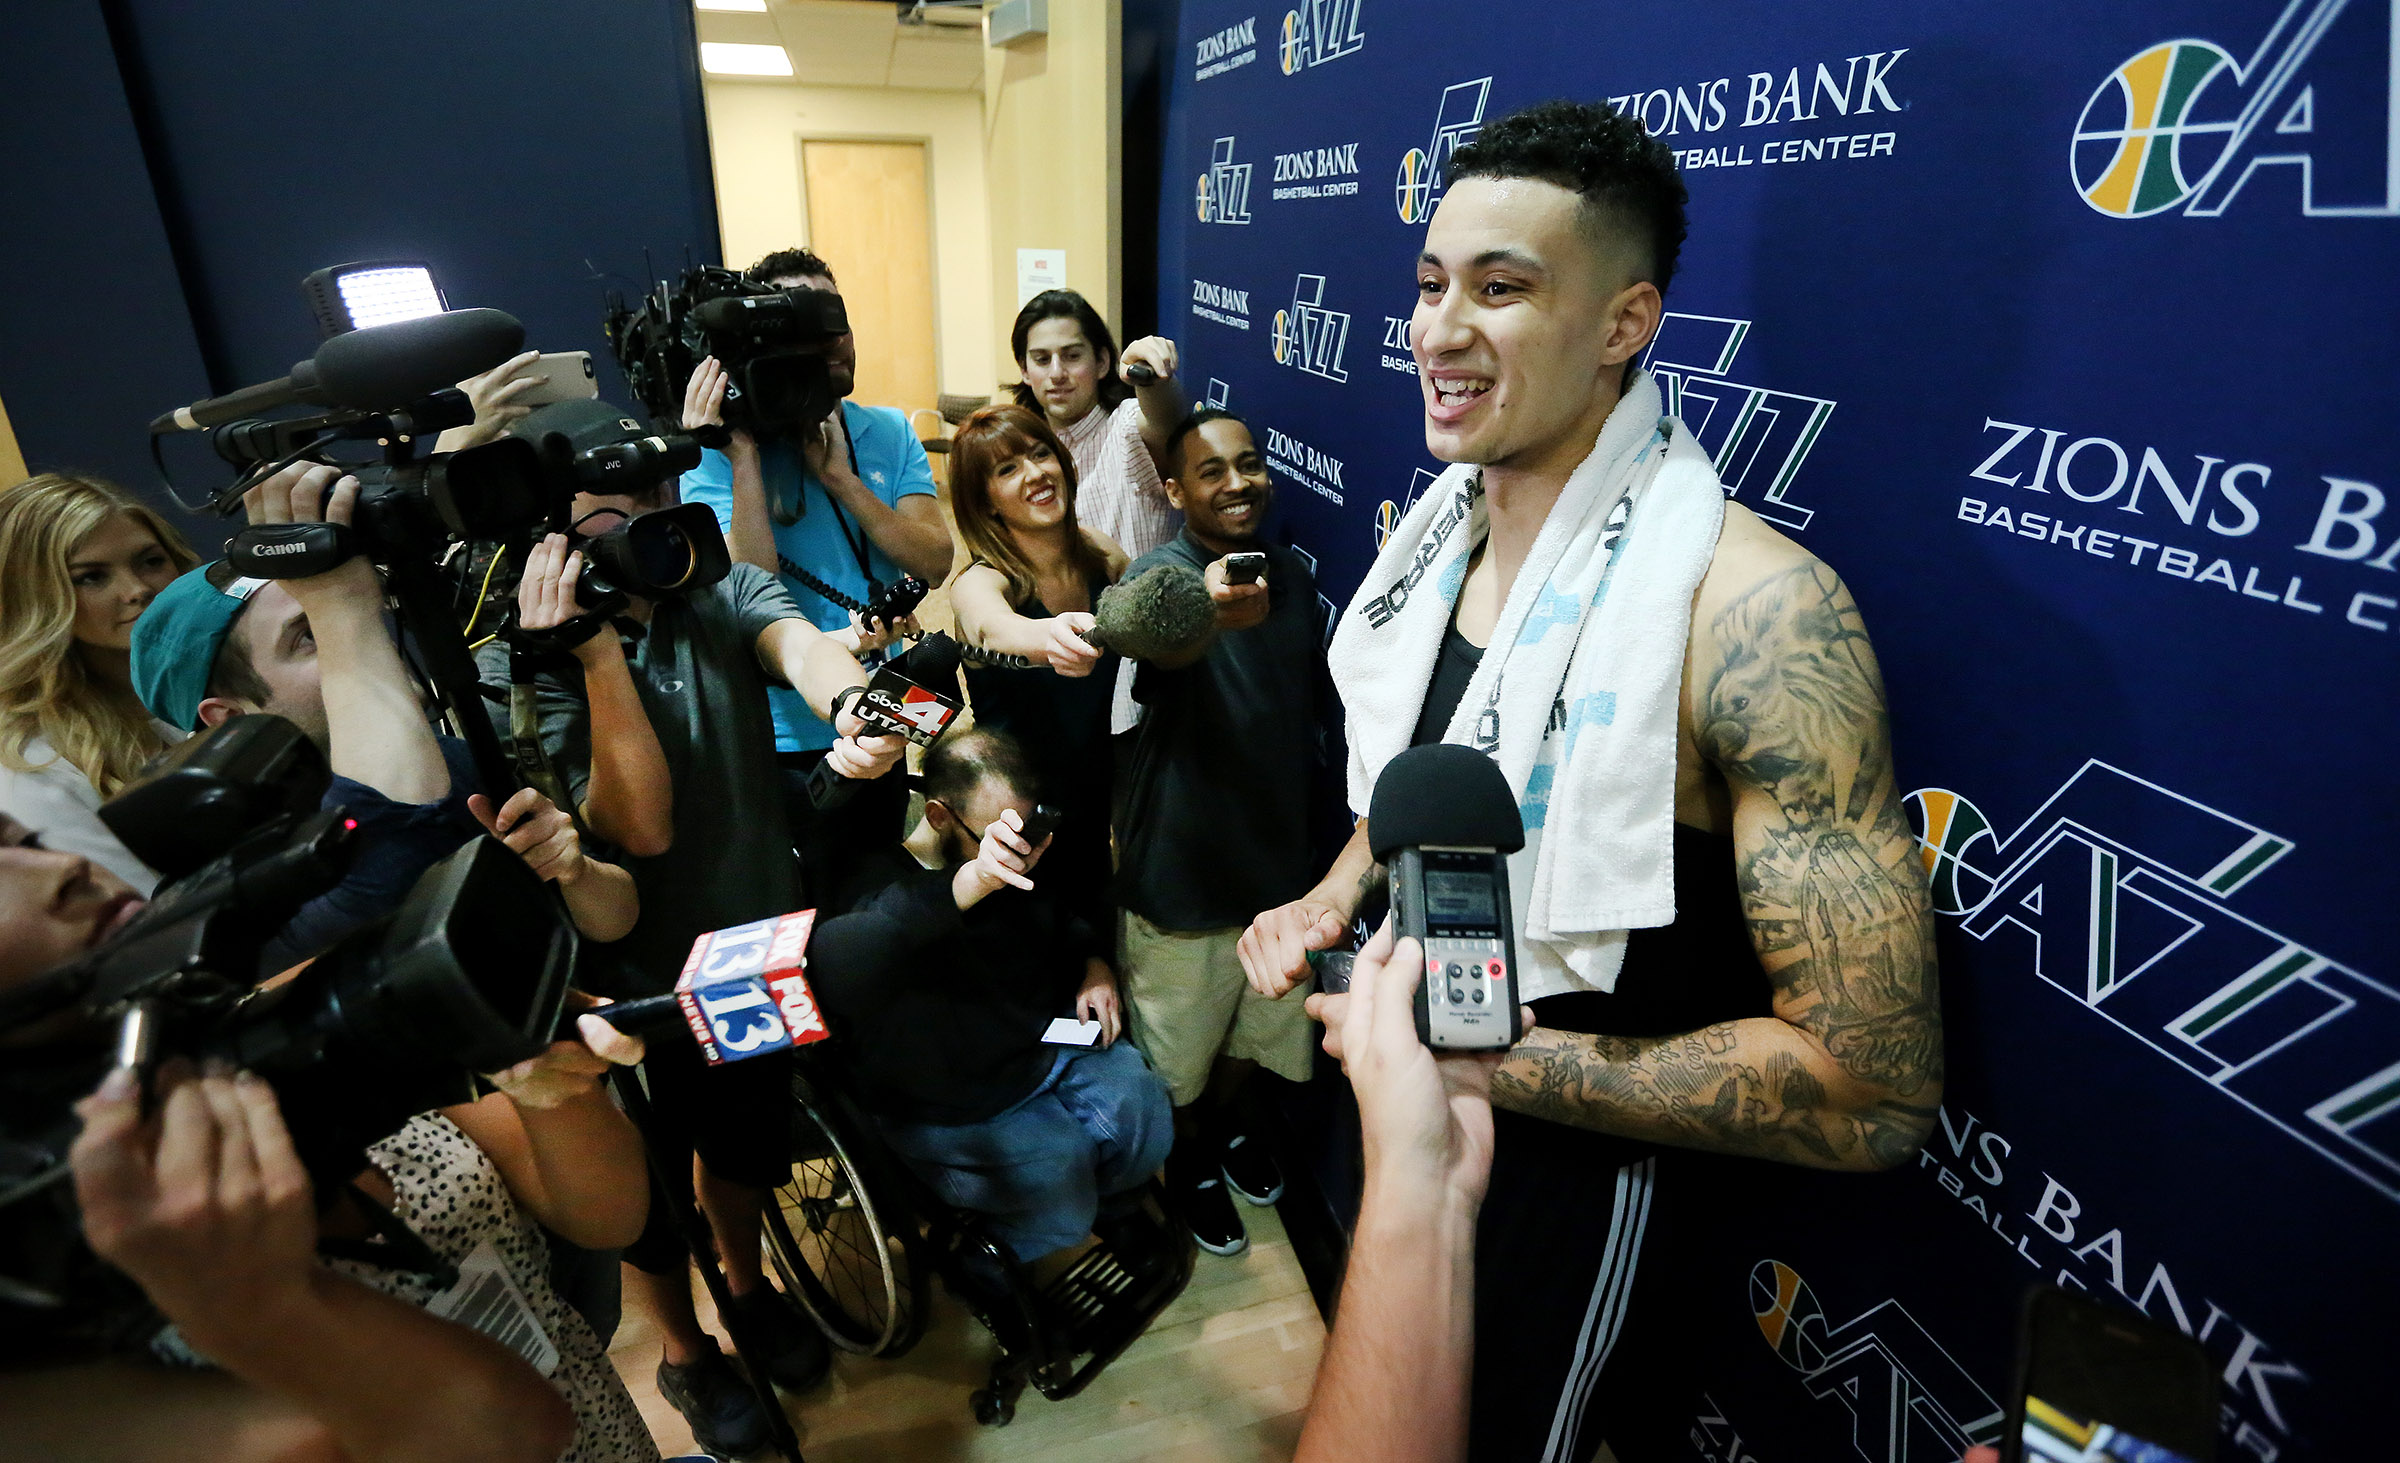 Jazz work out, talk about pro potential of BYU's Eric Mika, Utah's Kyle Kuzma